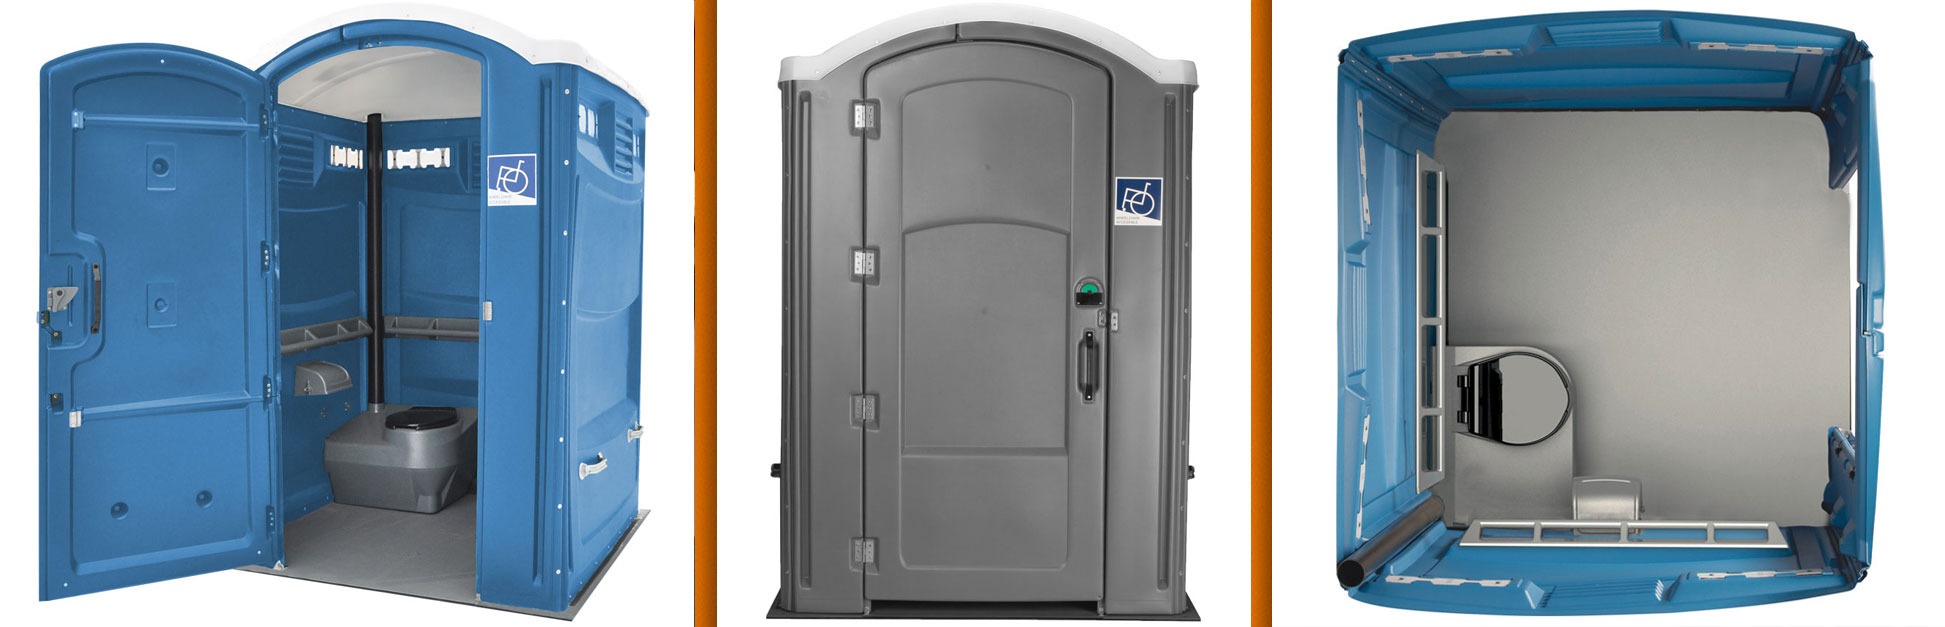 portolets clean for bathroom trailers a portable rentals ada restrooms portolet restroom luxury handicap rent